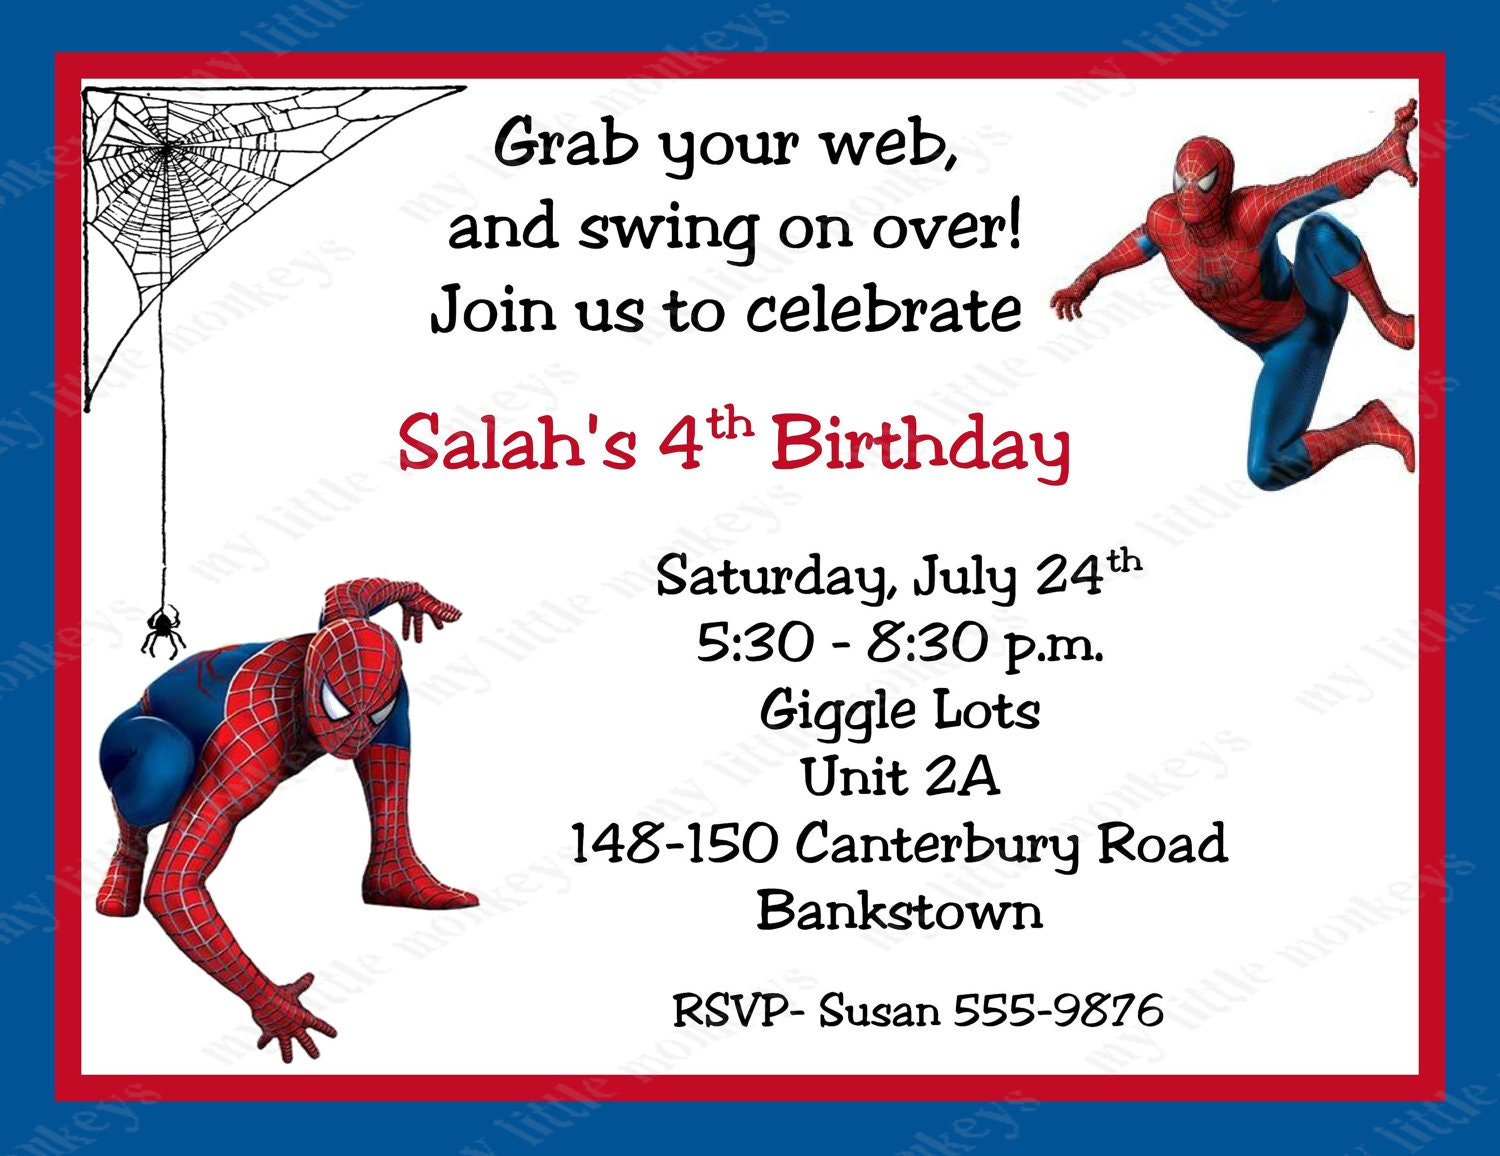 cars party online invitation coloring page faxecolorhd printable spider man birthday invitations children party invitation printable birthday invitations